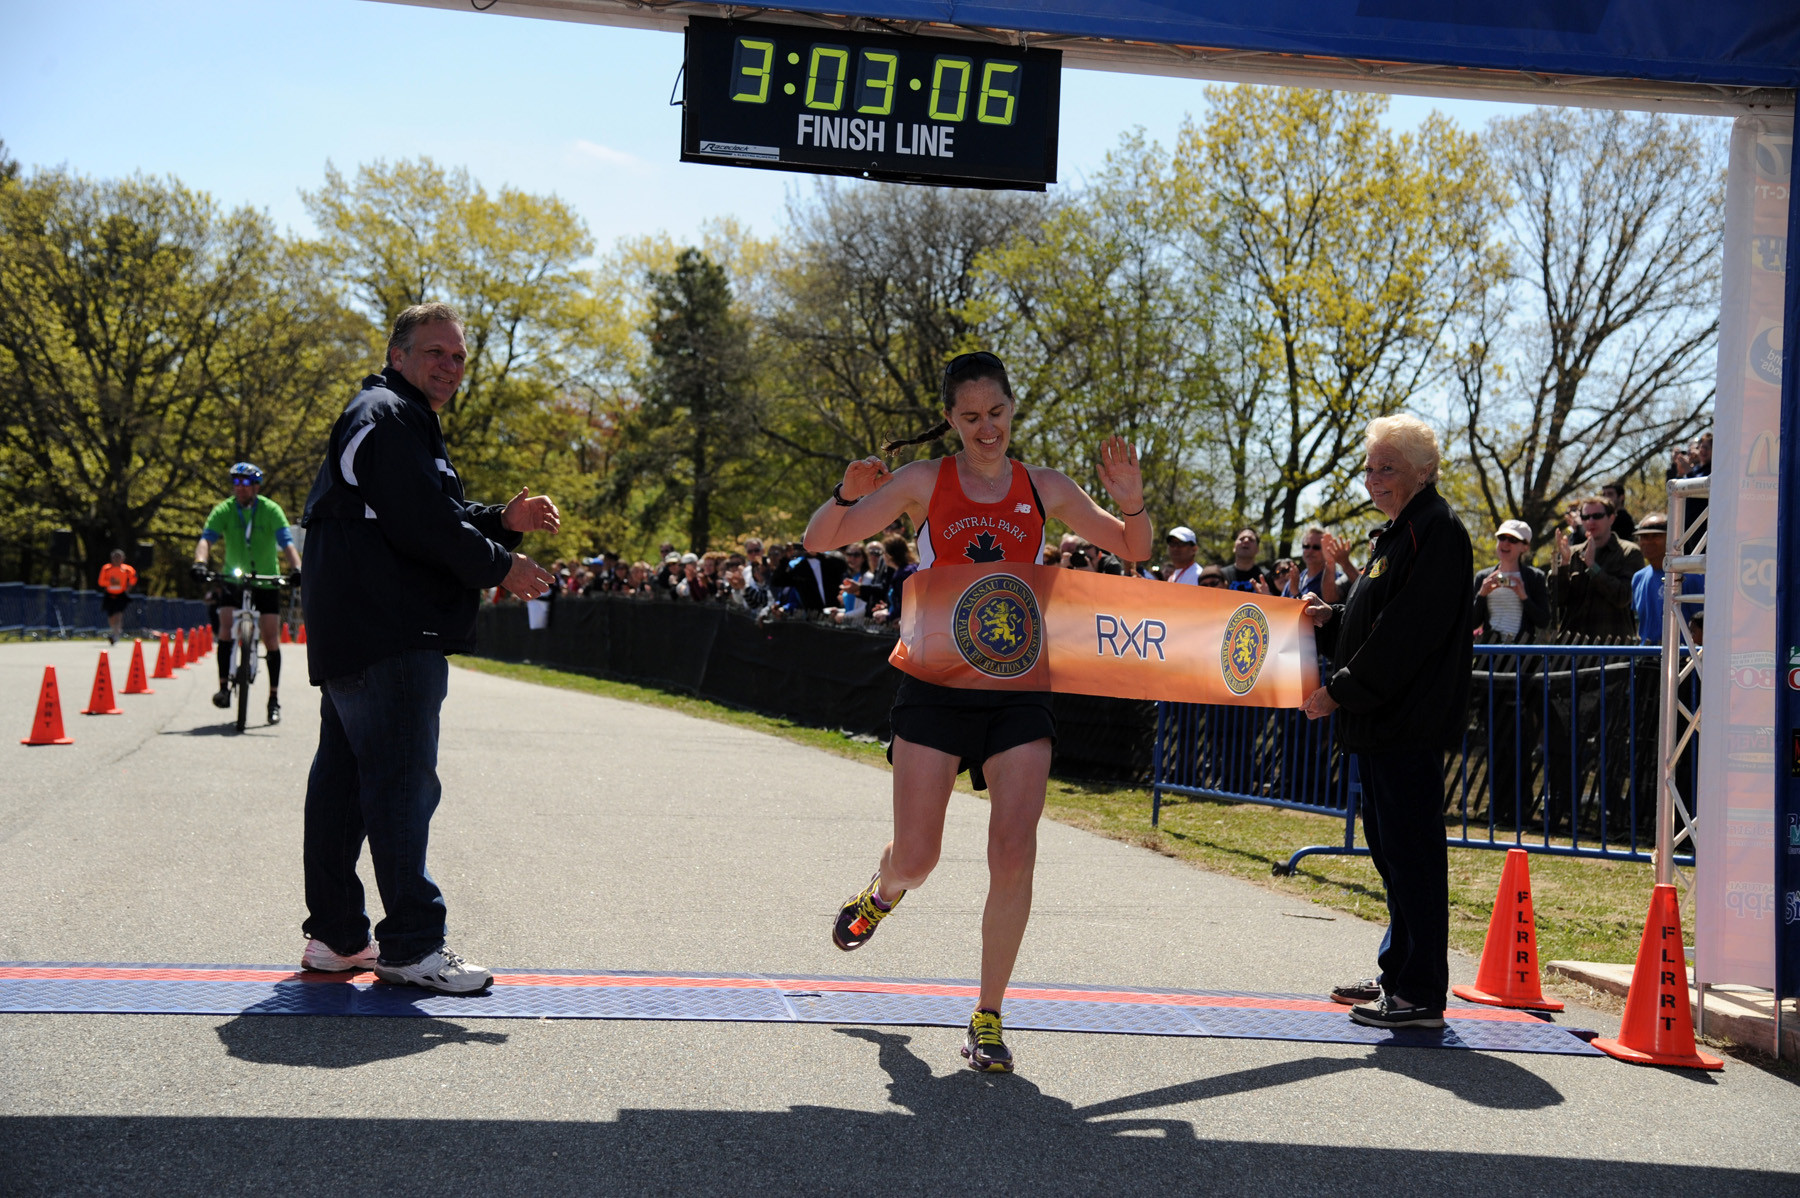 Kelly Gillen, 30, from New York City, finished first among the women at 3 hours, 3 minutes.